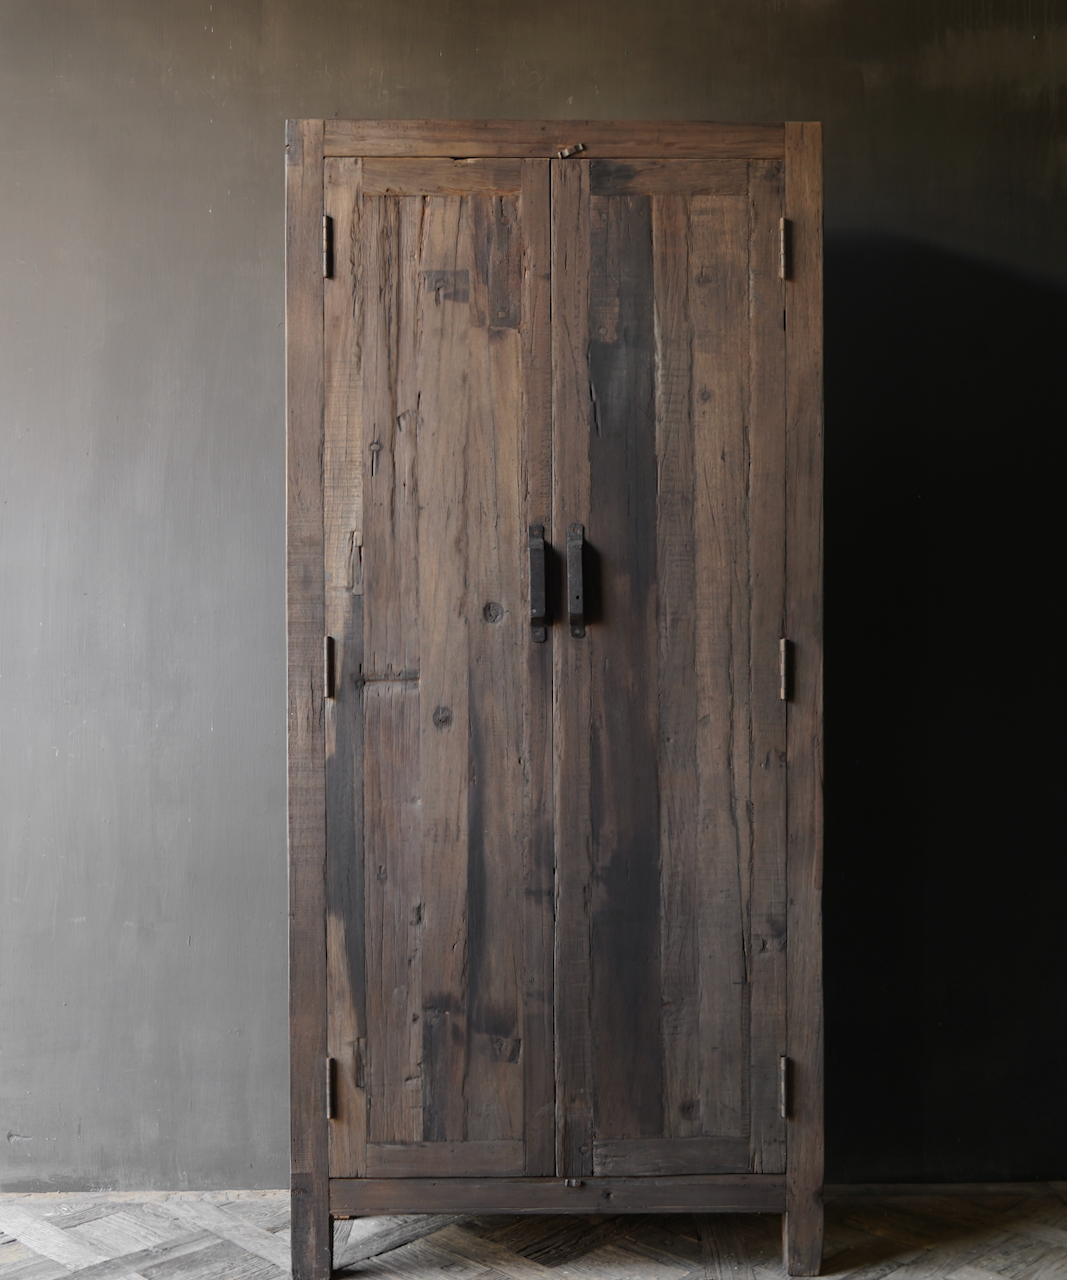 Tough Rural old wooden two-door cupboard-3